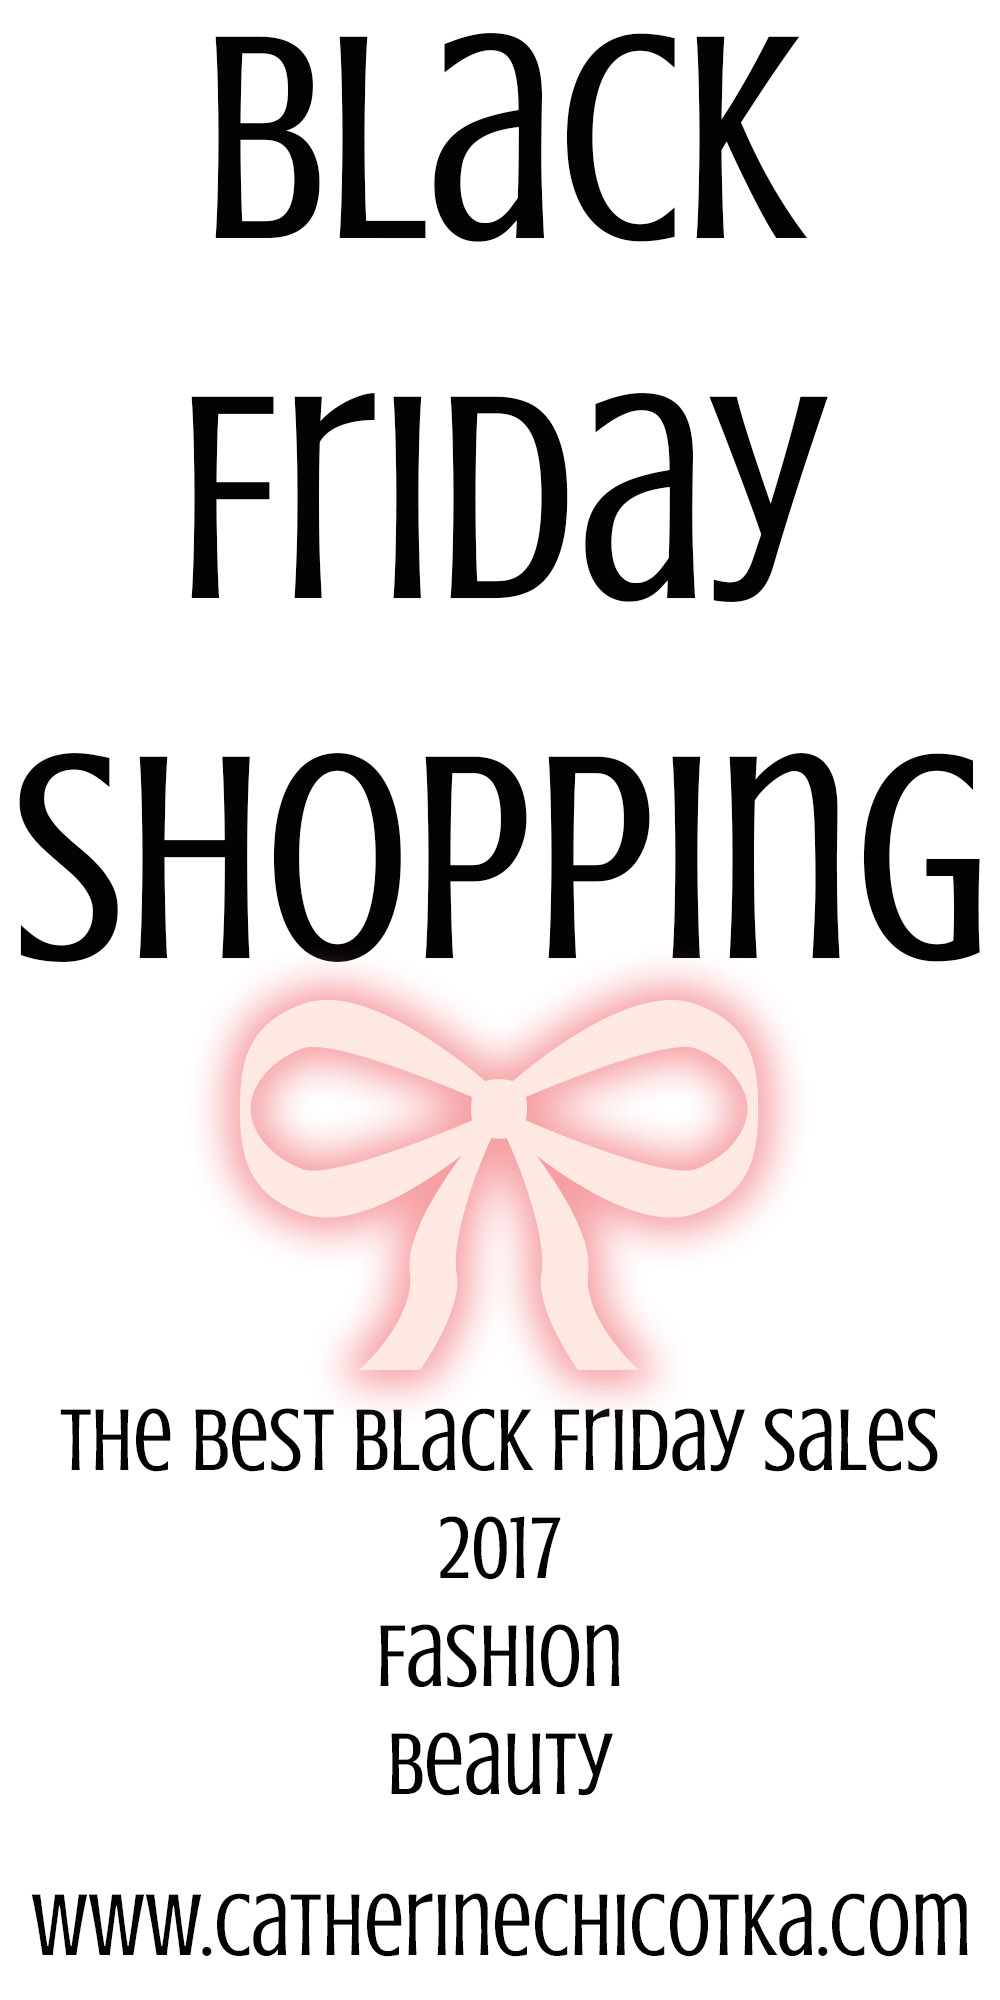 Black Friday Shopping // A guide to the best fashion and beauty sales this holiday season // CatherineChicotka.com